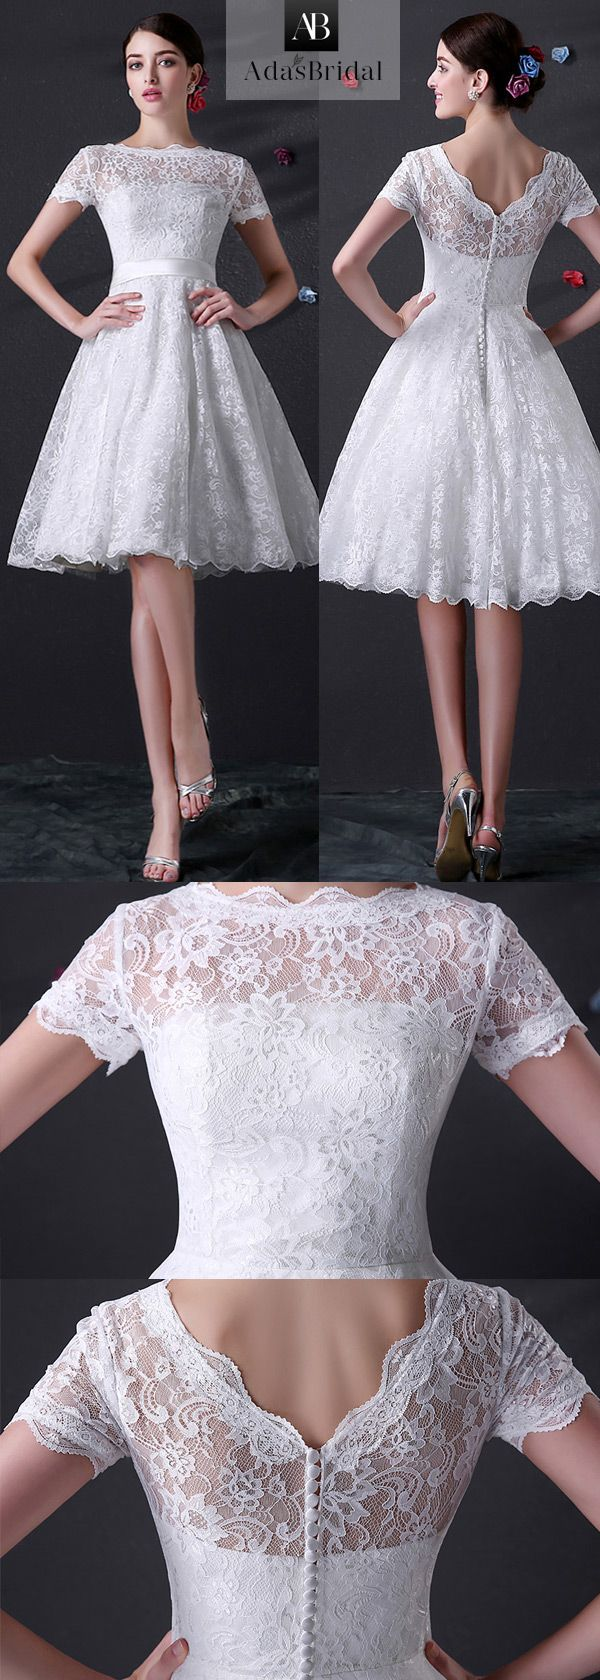 Knee length full lace wedding dress with short sleeves. Whole lace let you be more female, bowknot makes you lovely. (WWD49630) - Adasbridal.com